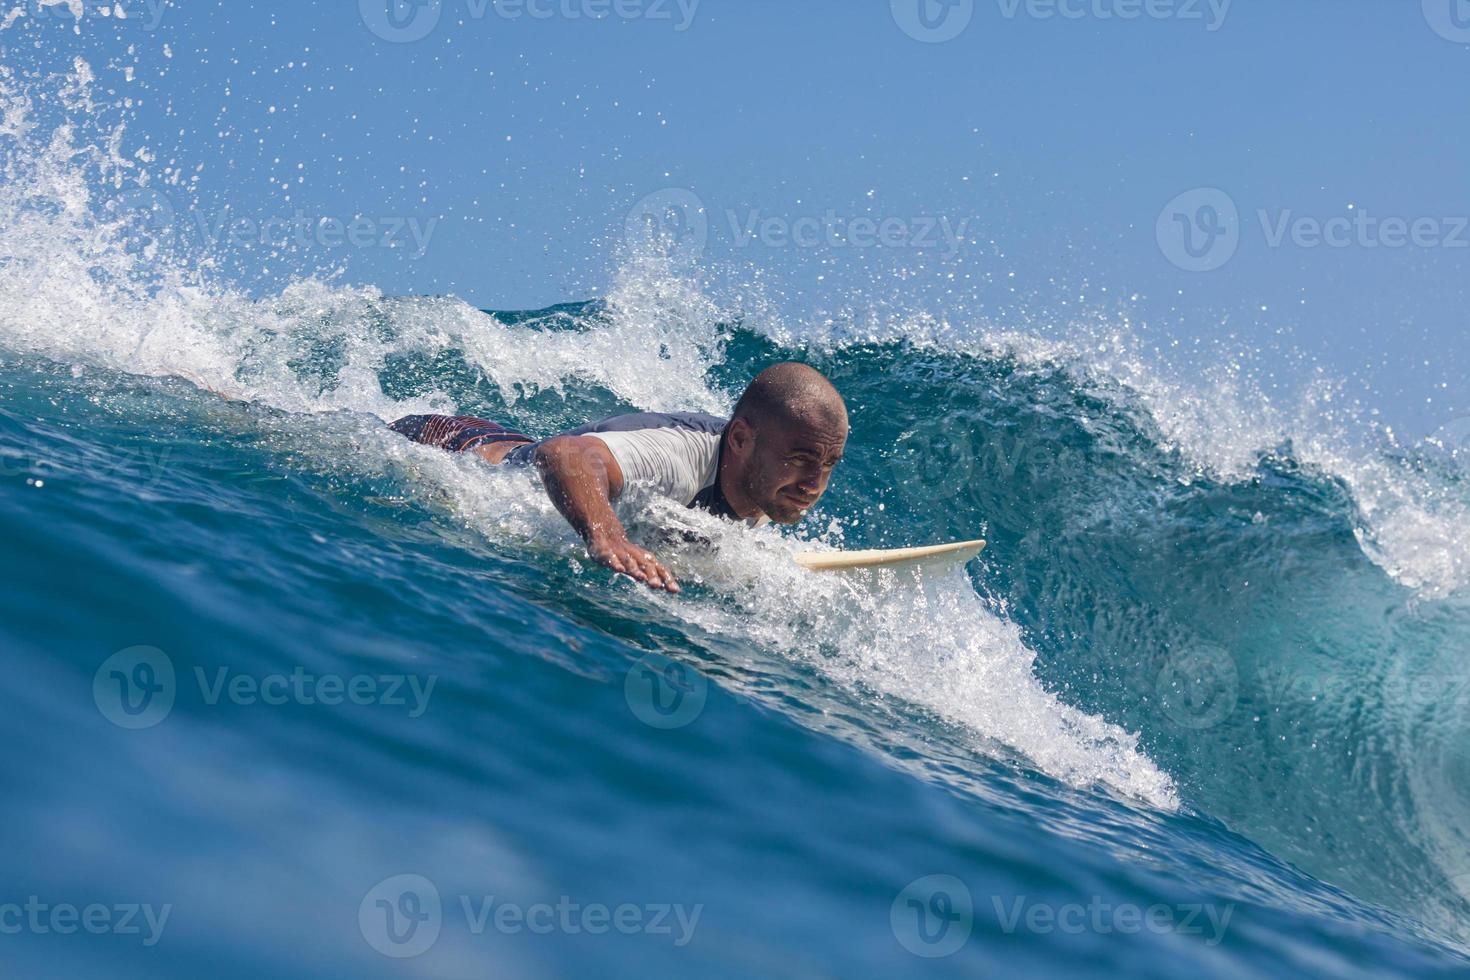 Surfing a wave. photo